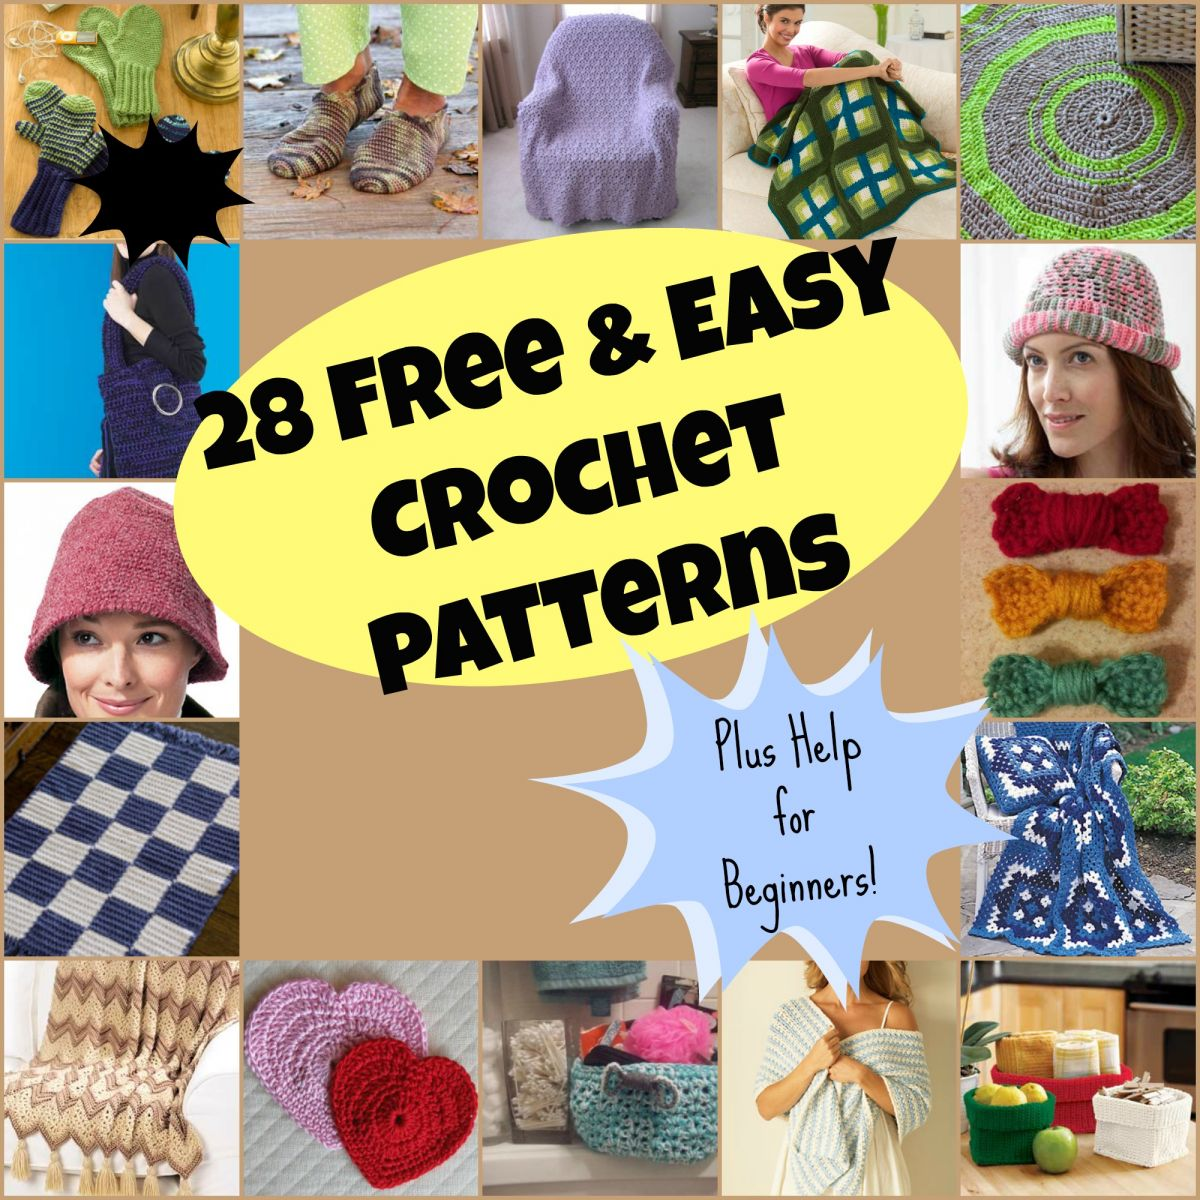 http://www.favequilts.com/master_images/Crochet/easy-crochet-patterns.jpg